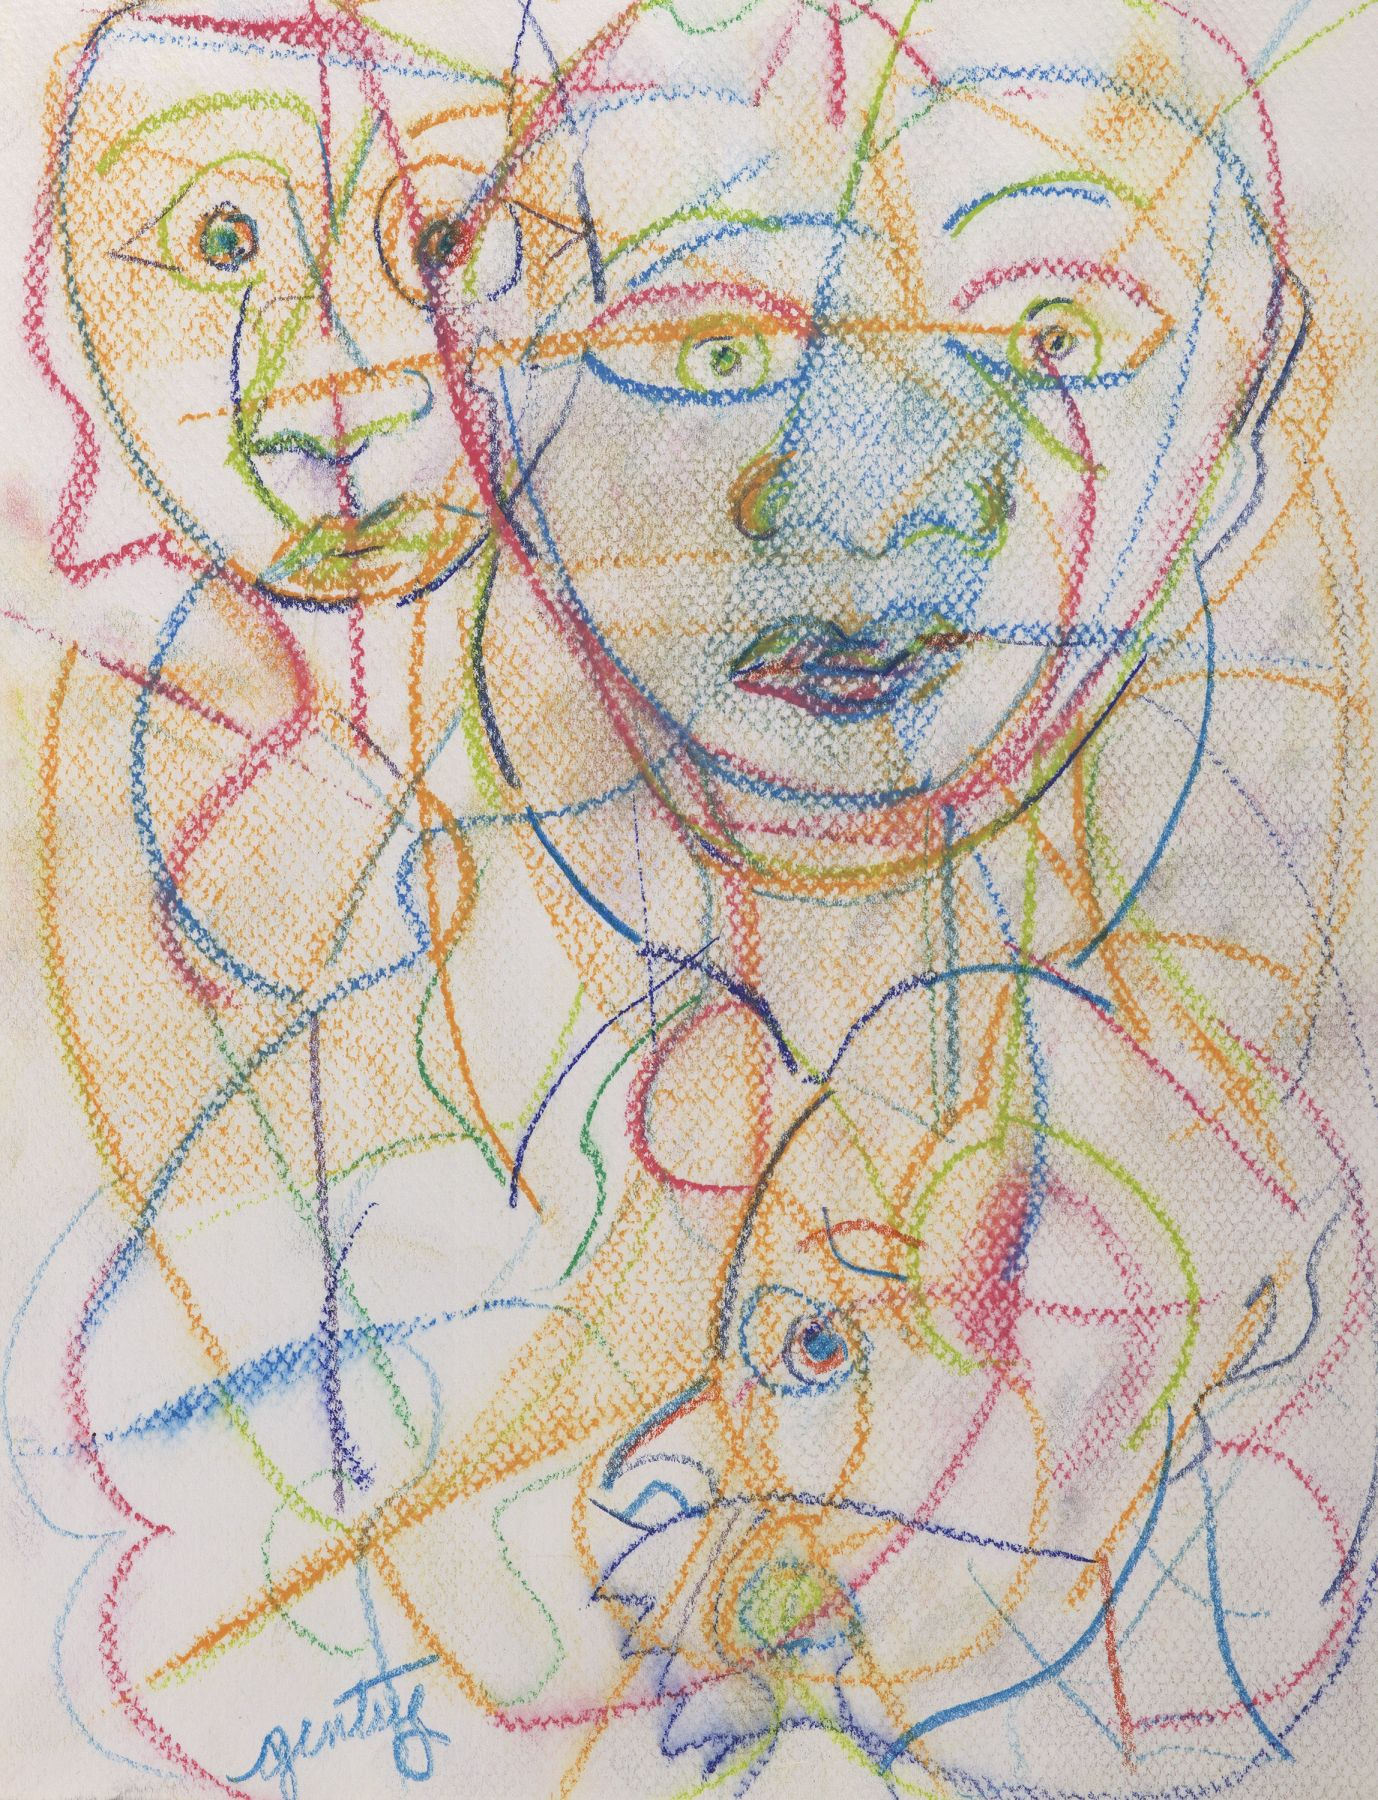 Dialogue Series F, 1993, Pastel and colored pencil on paper